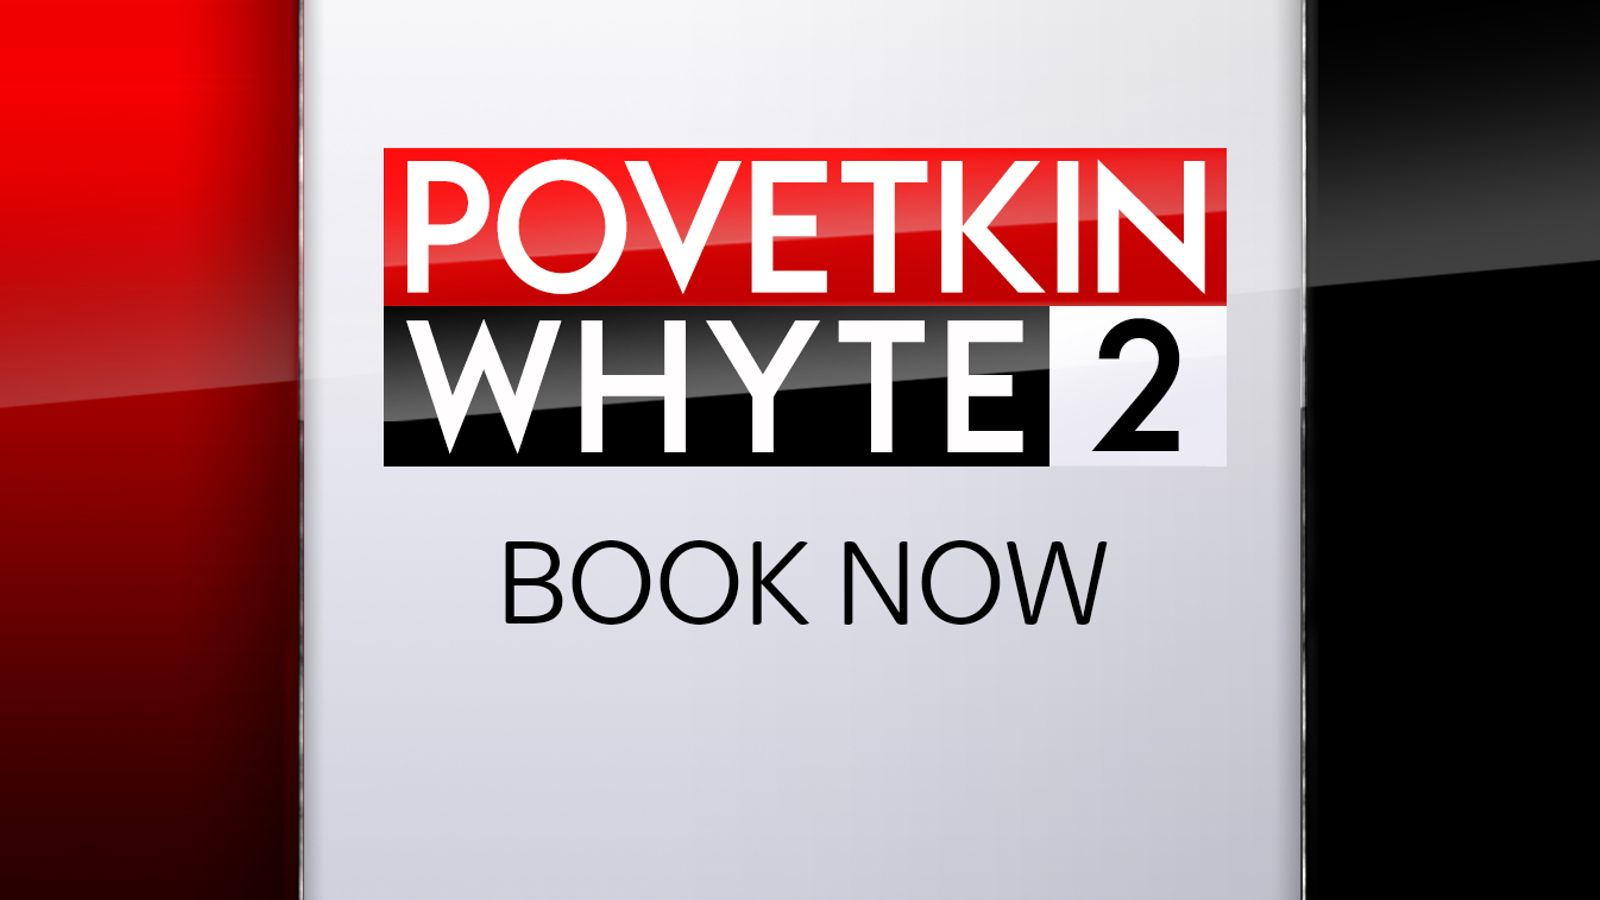 Povetkin vs Whyte 2: Booking information for Dillian Whyte's rematch with Alexander Povetkin on Saturday live on Sky Sports Box Office